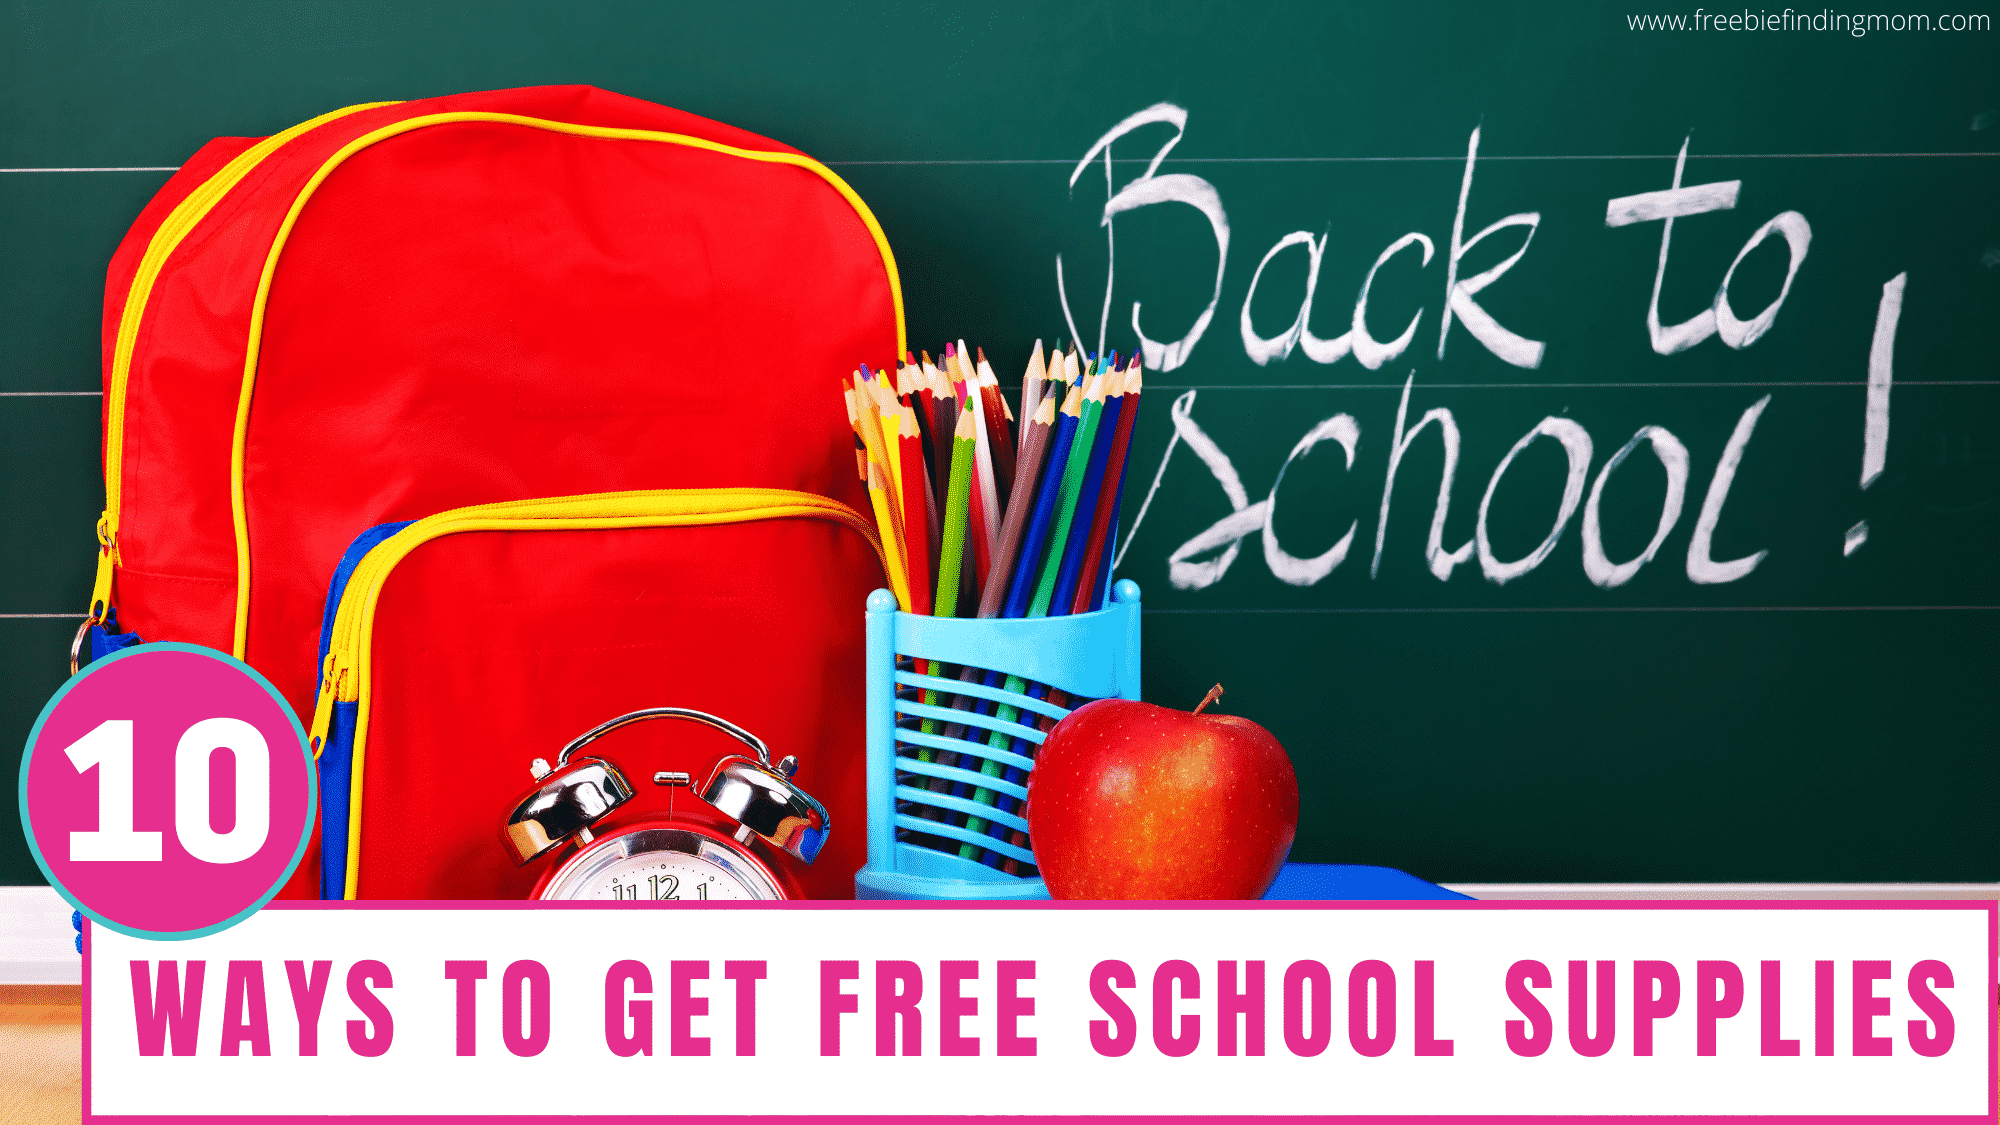 Is your budget bursting at the seams because of back to school shopping? Save money by using these ways to get free school supplies for your kid.